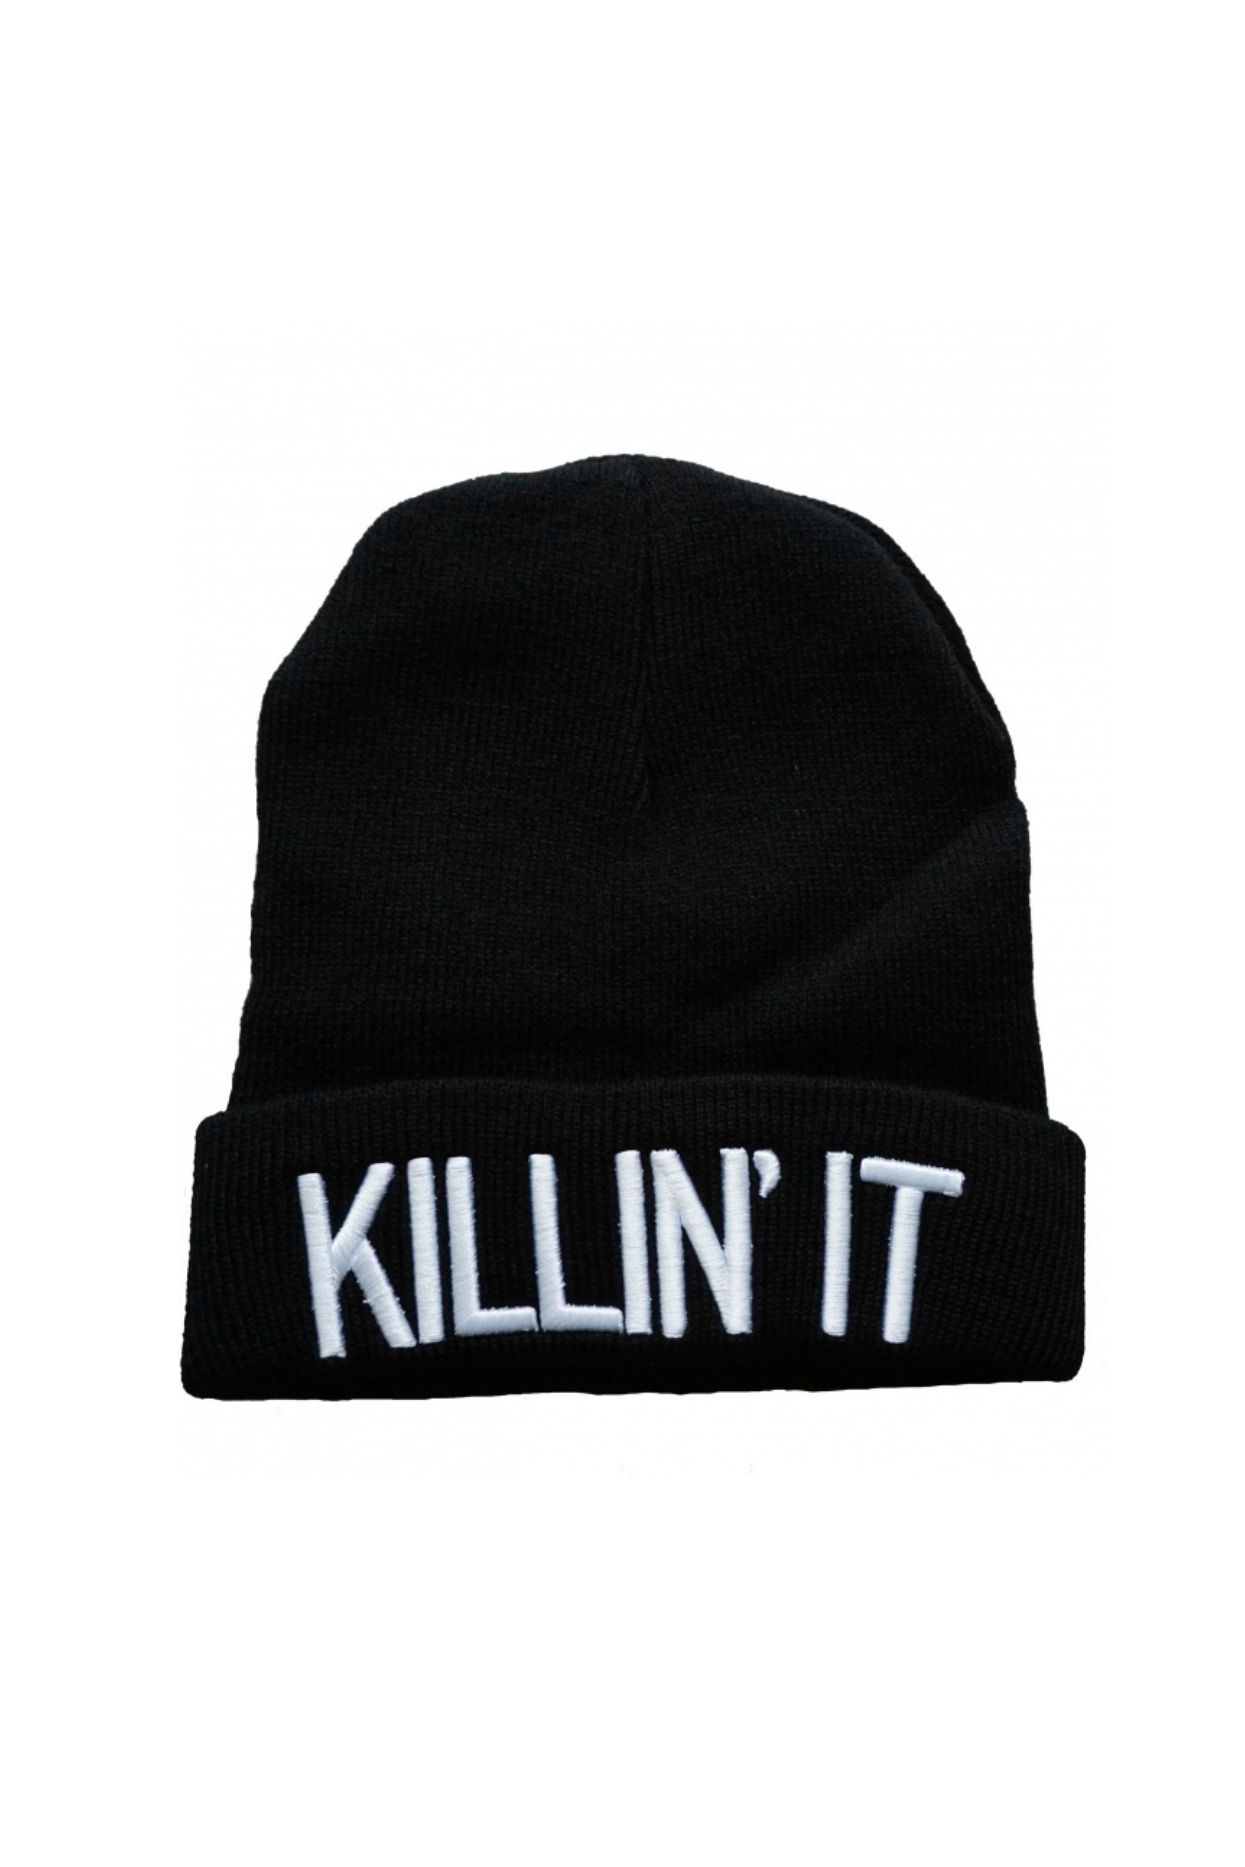 Killin' It Beanie | Just Vu